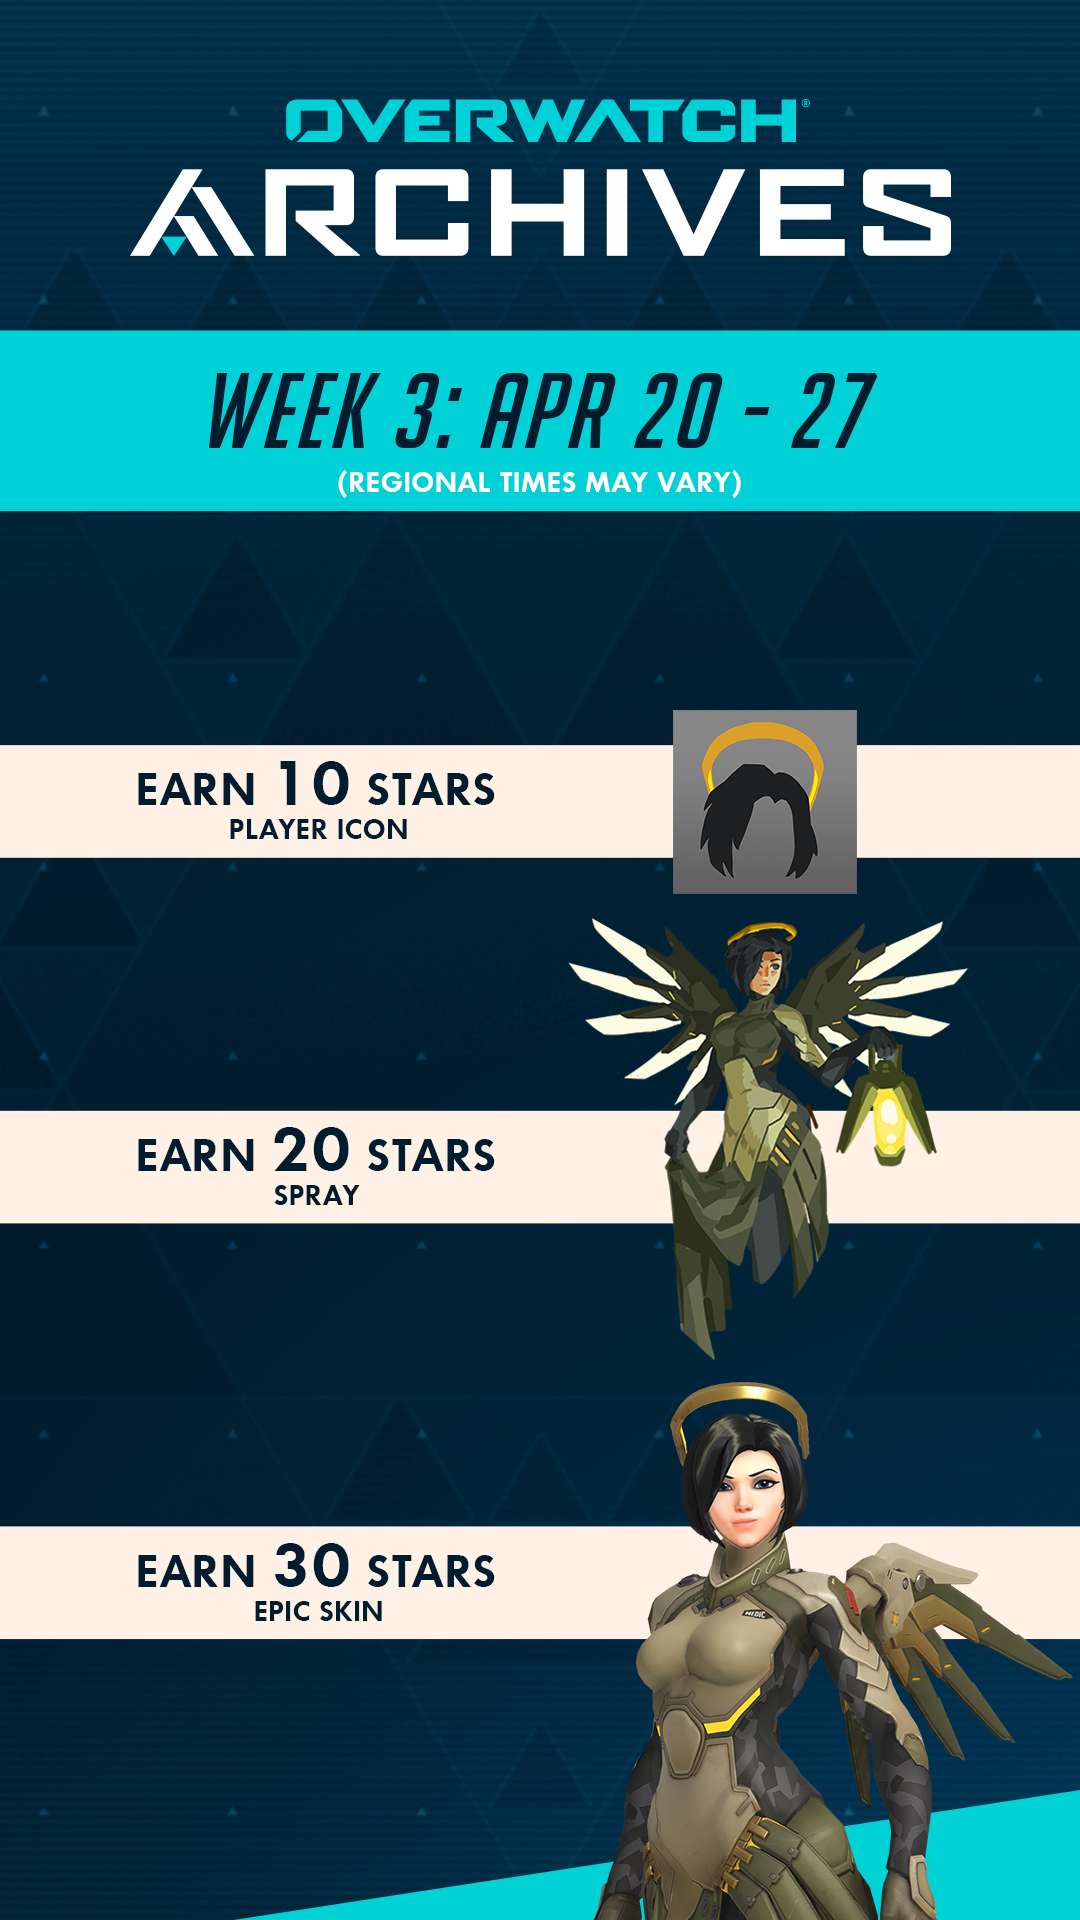 Week 3 Rewards